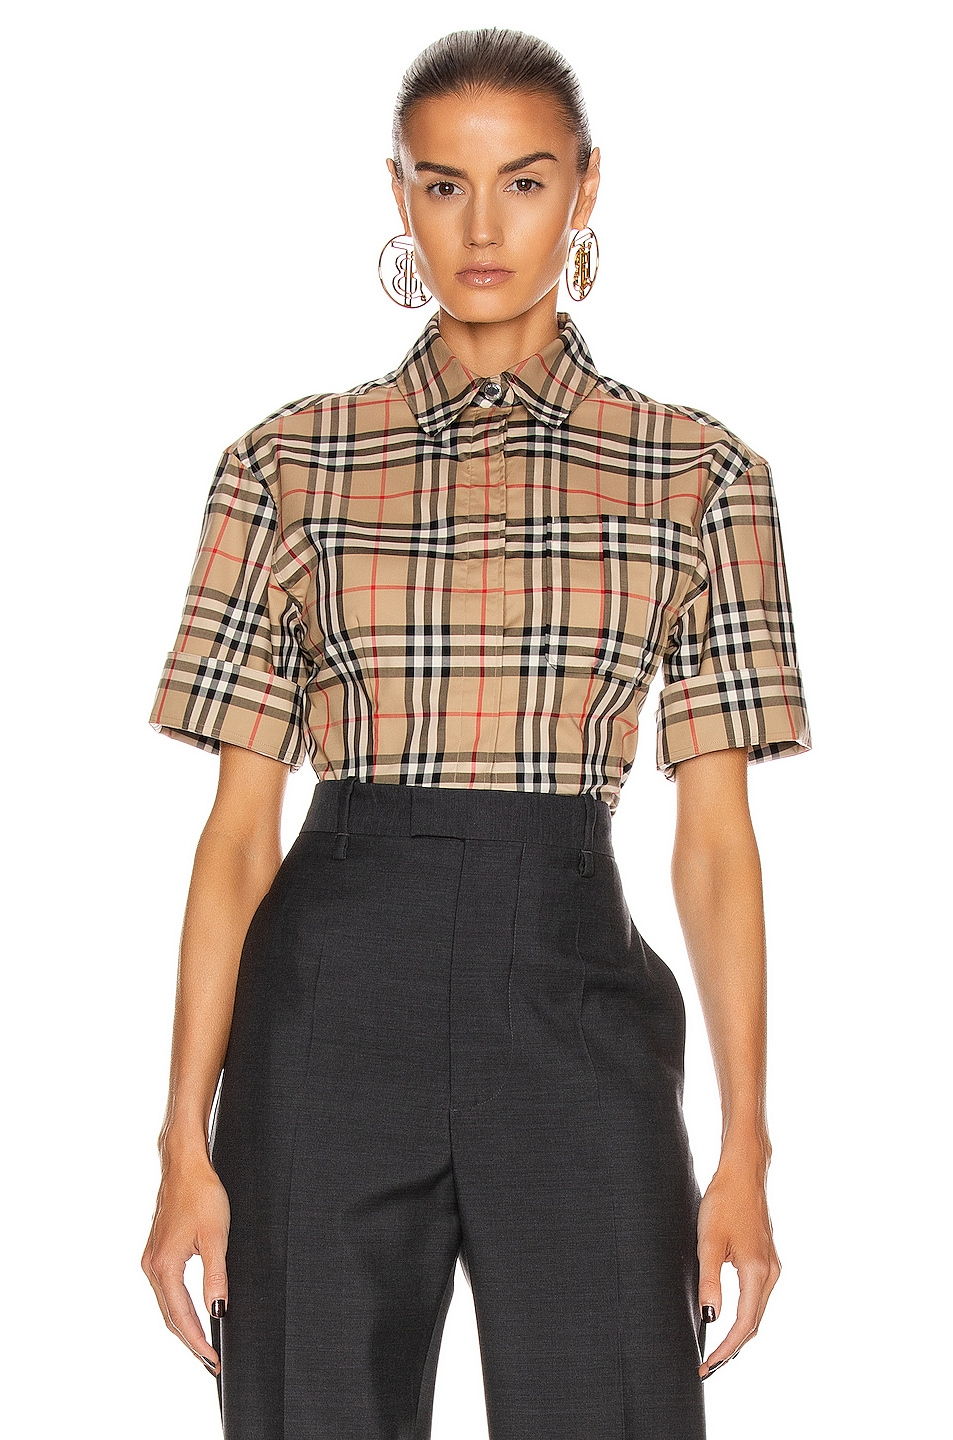 Image 2 of Burberry Short Sleeve Boxy Fit Top in Archive Beige Check